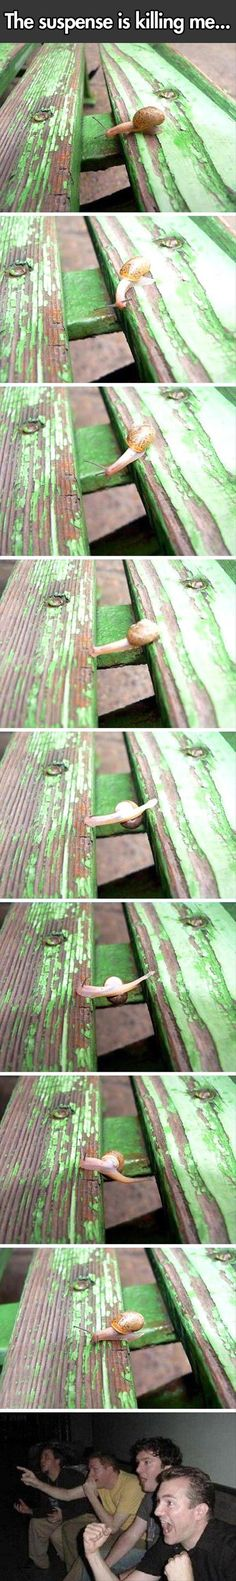 Thursday Funny Pictures Gallery snails, anim, parkour, funny pictures, funni, funny images, funny quotes, humor, thing